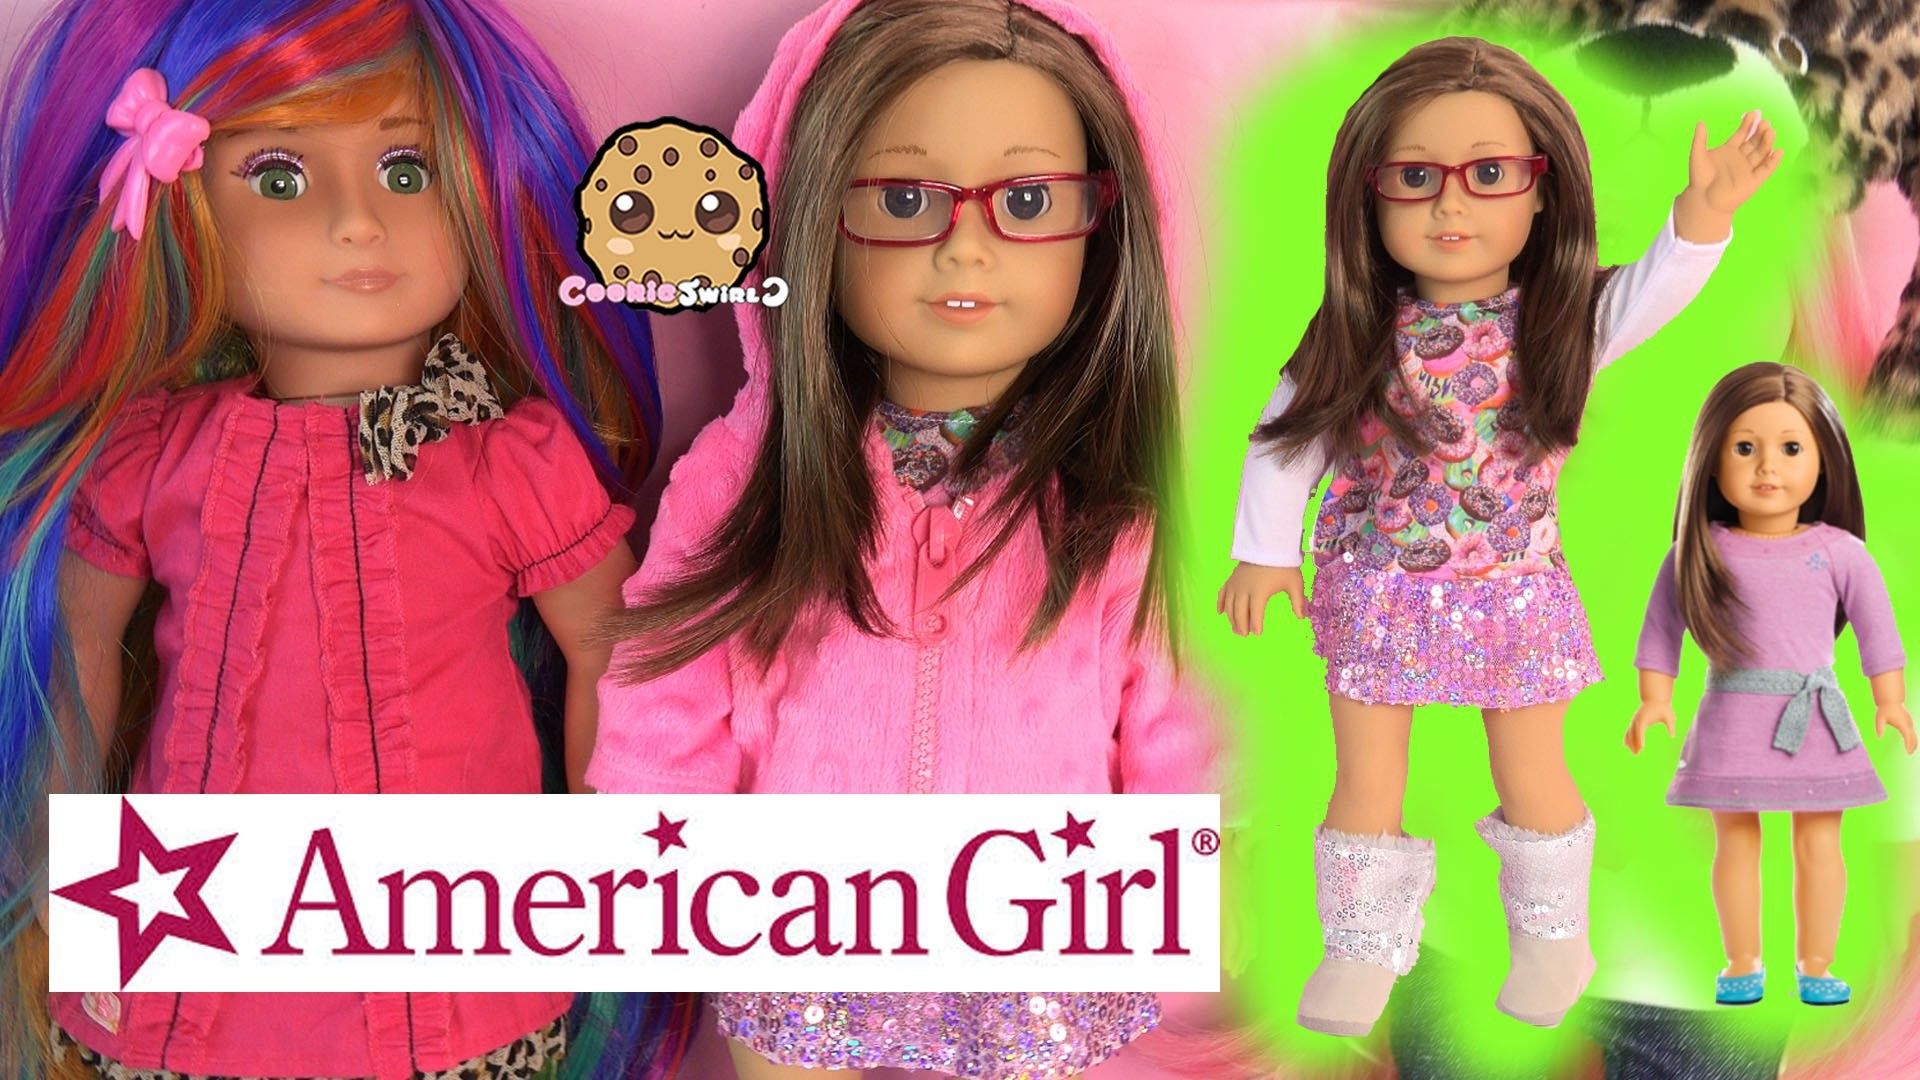 American Girl Truly Me Collection Doll + Fashion + Custom 18 Inch Dolls –  Cookieswirlc Toy Video – YouTube